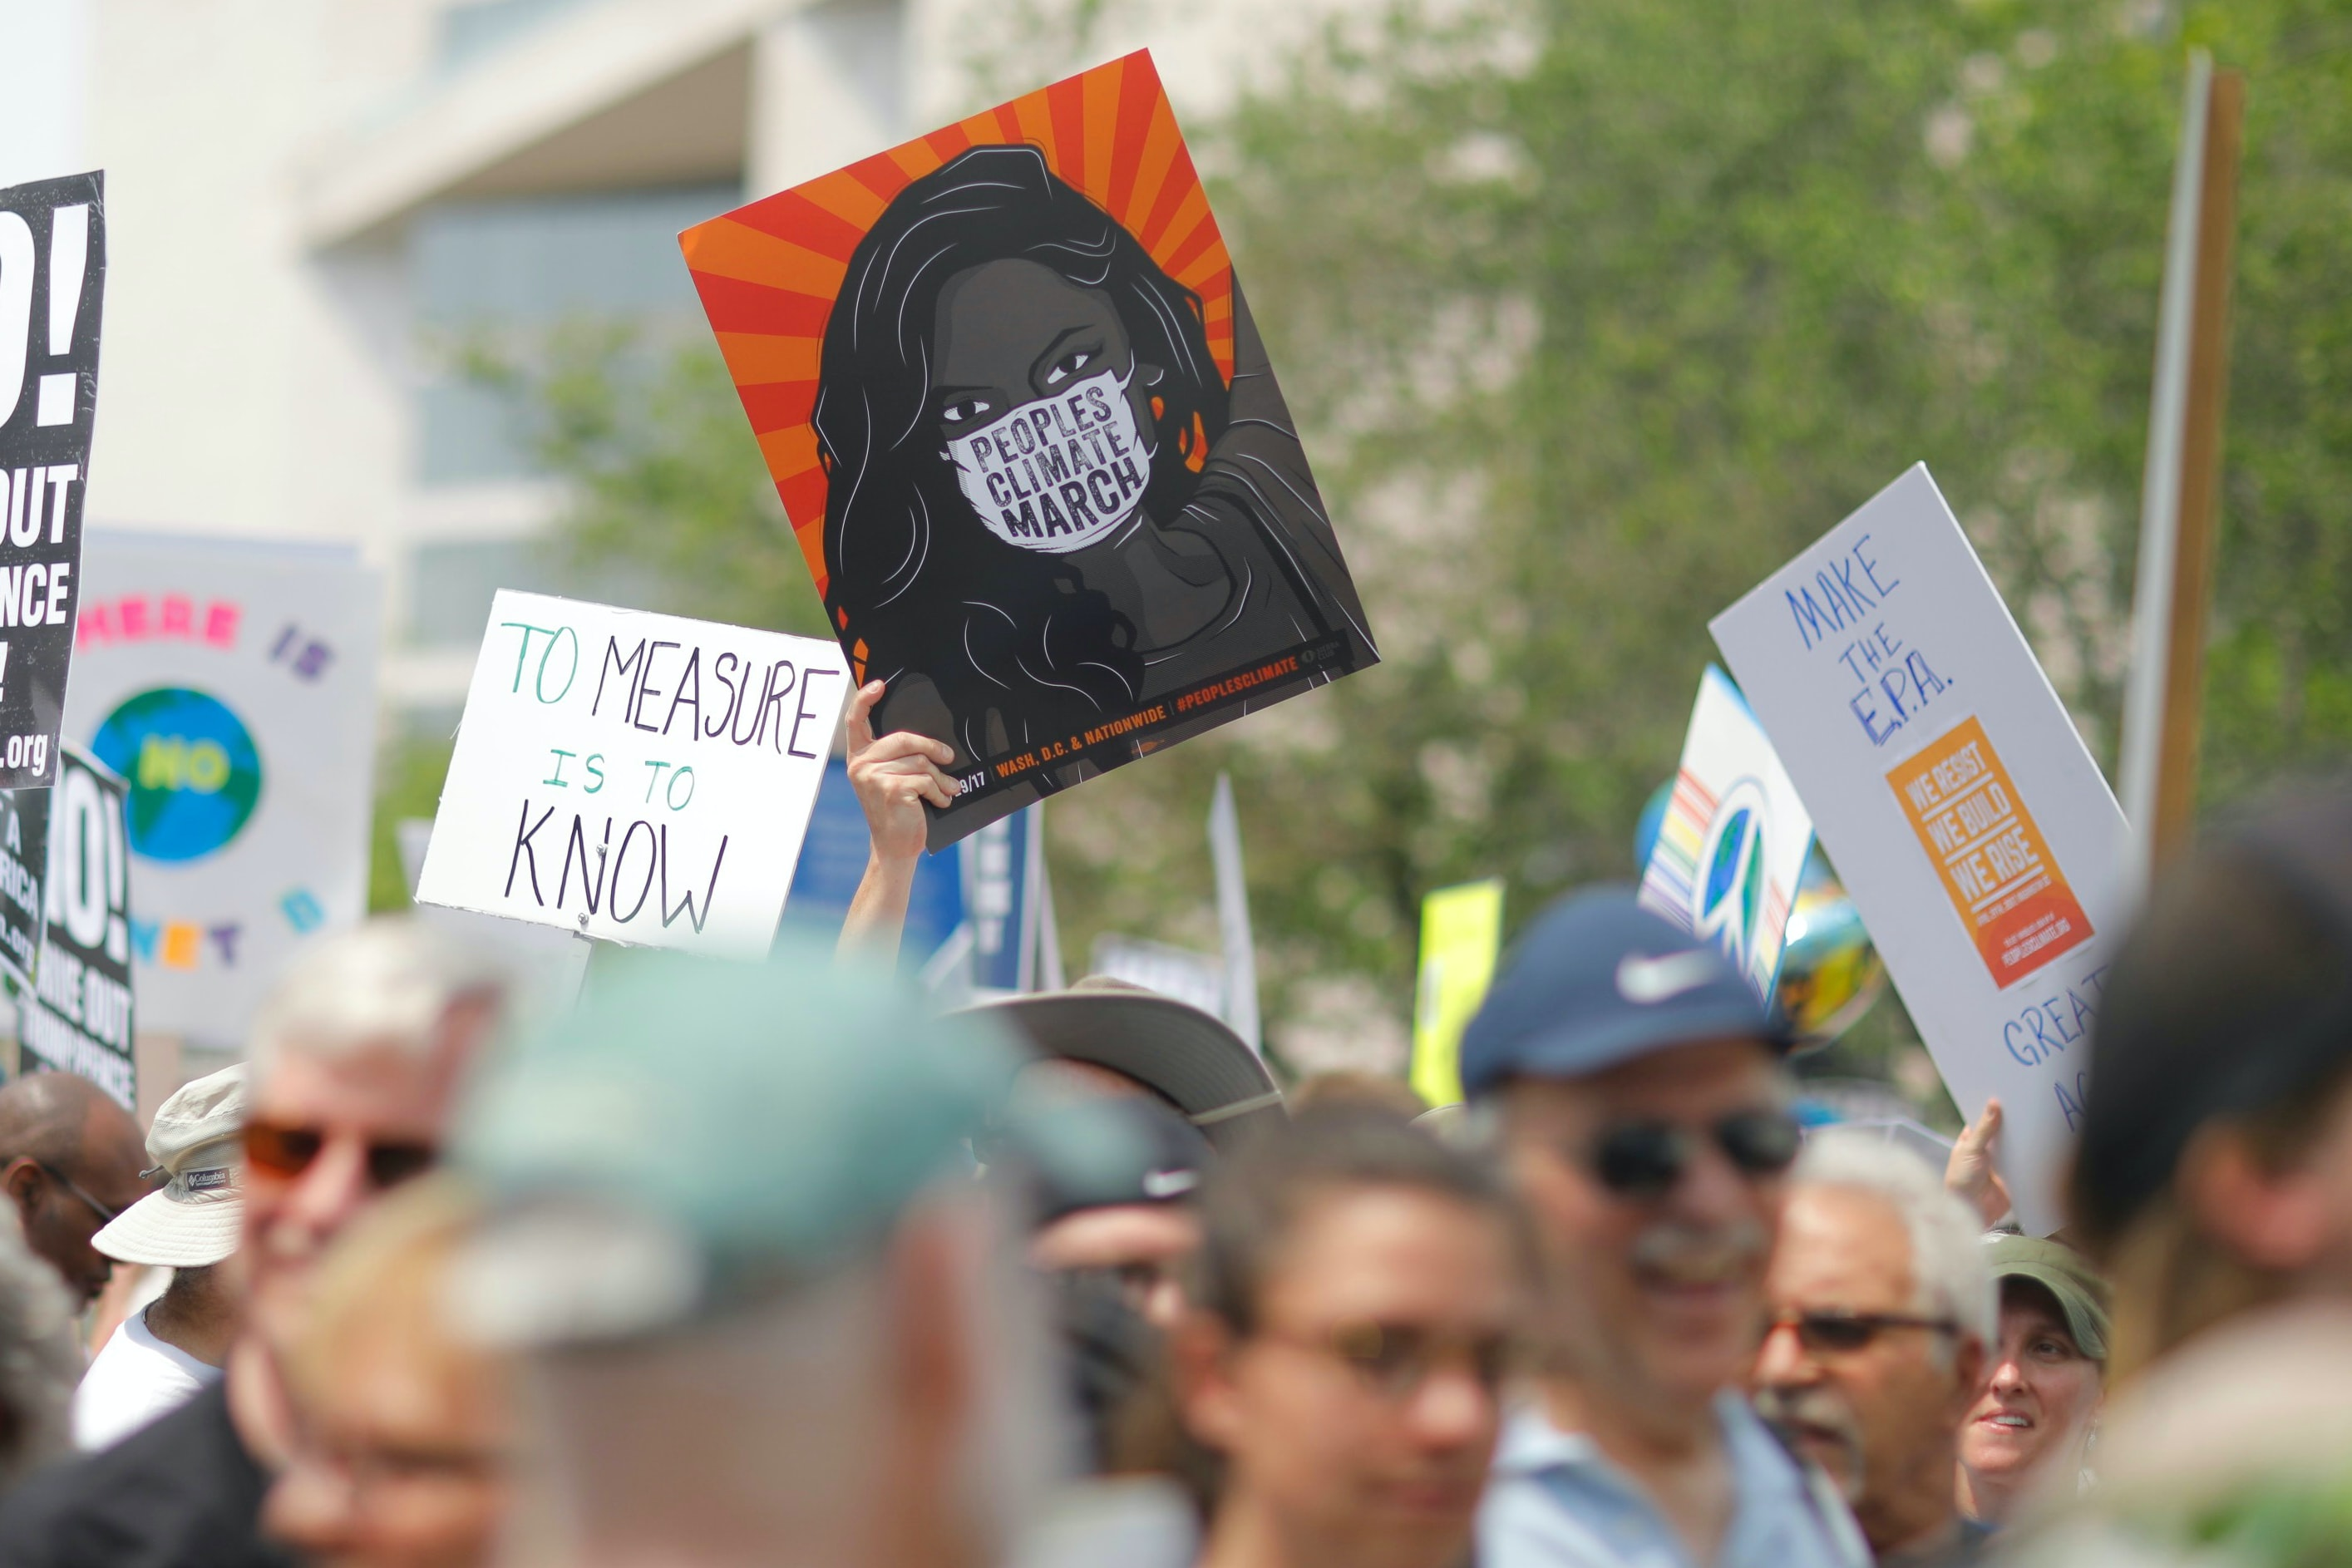 Protesters are holding various signs with different messages during the Peoples Climate March in Washington.